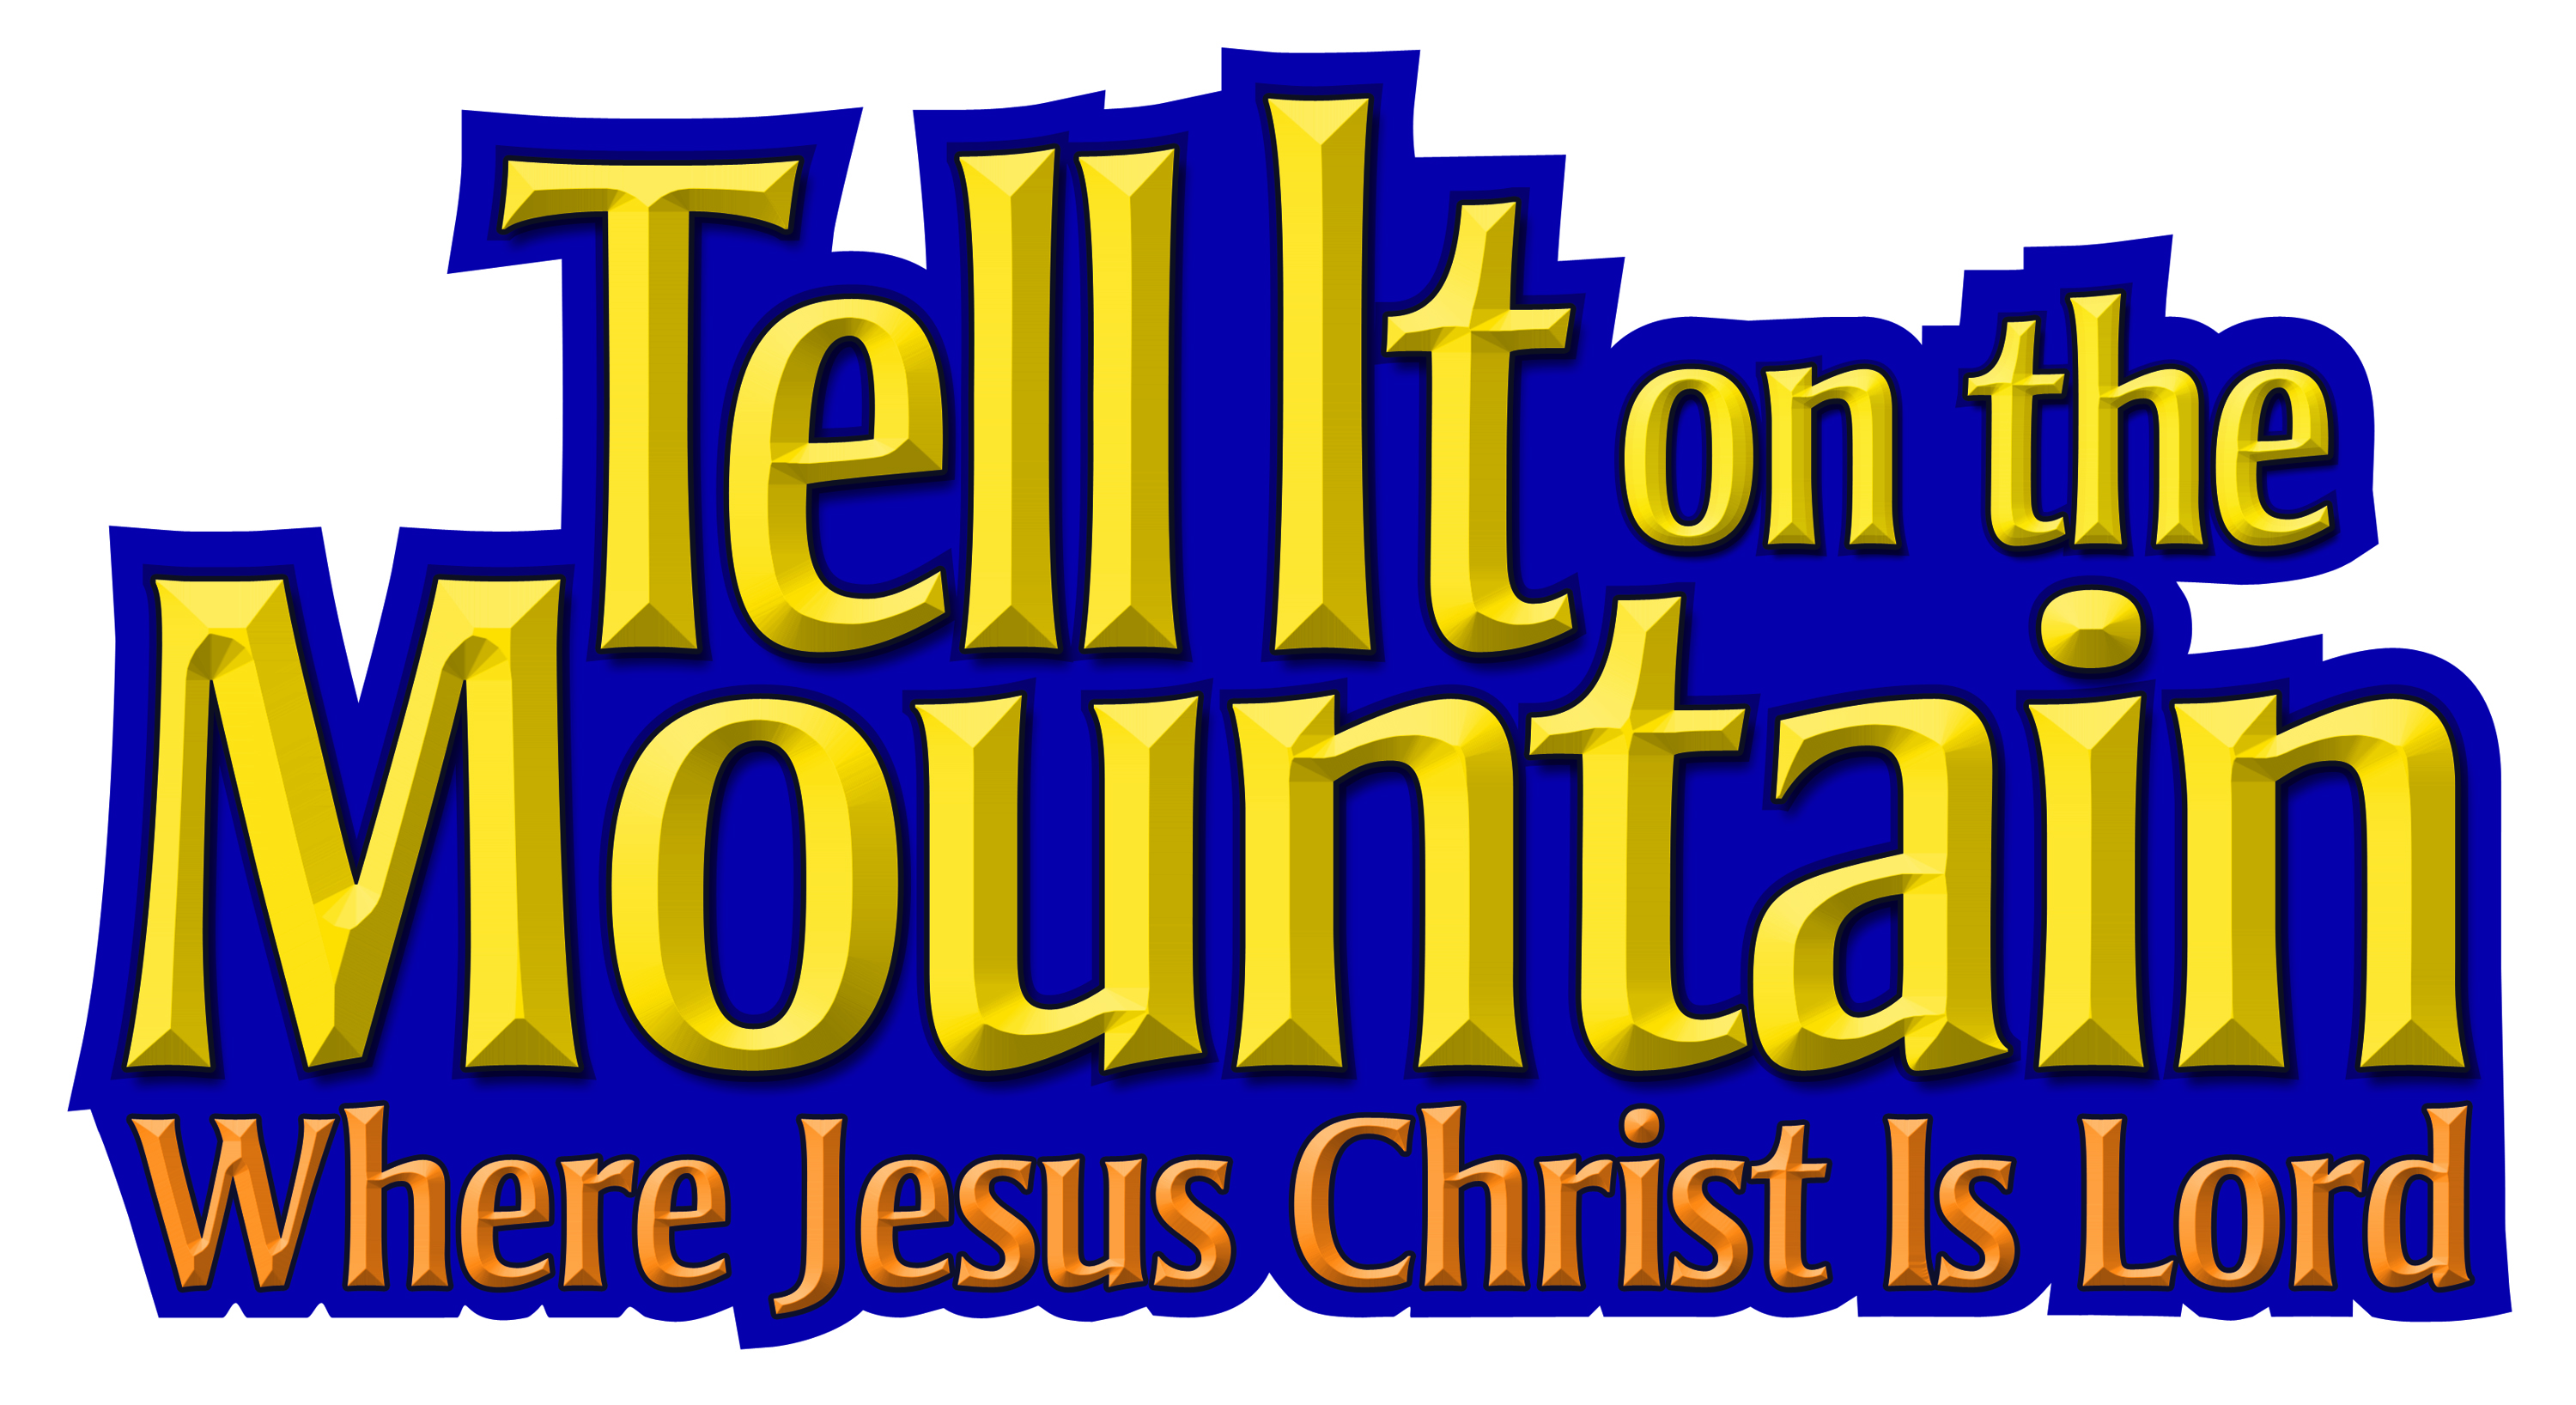 Mountain clipart banner #14